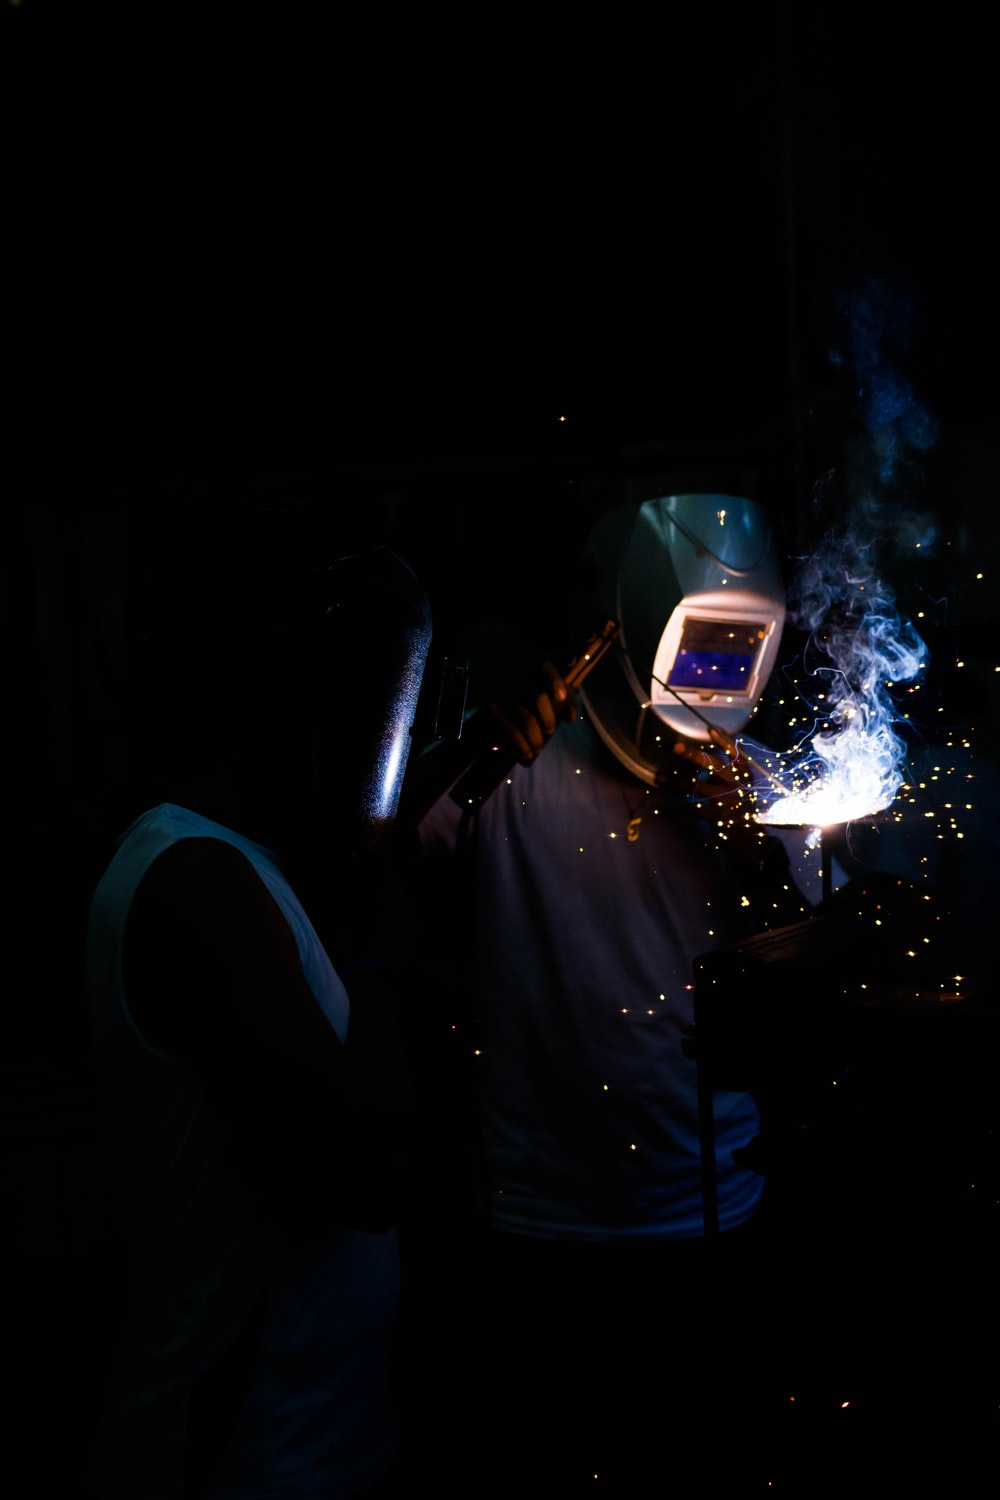 man welding and wearing mask